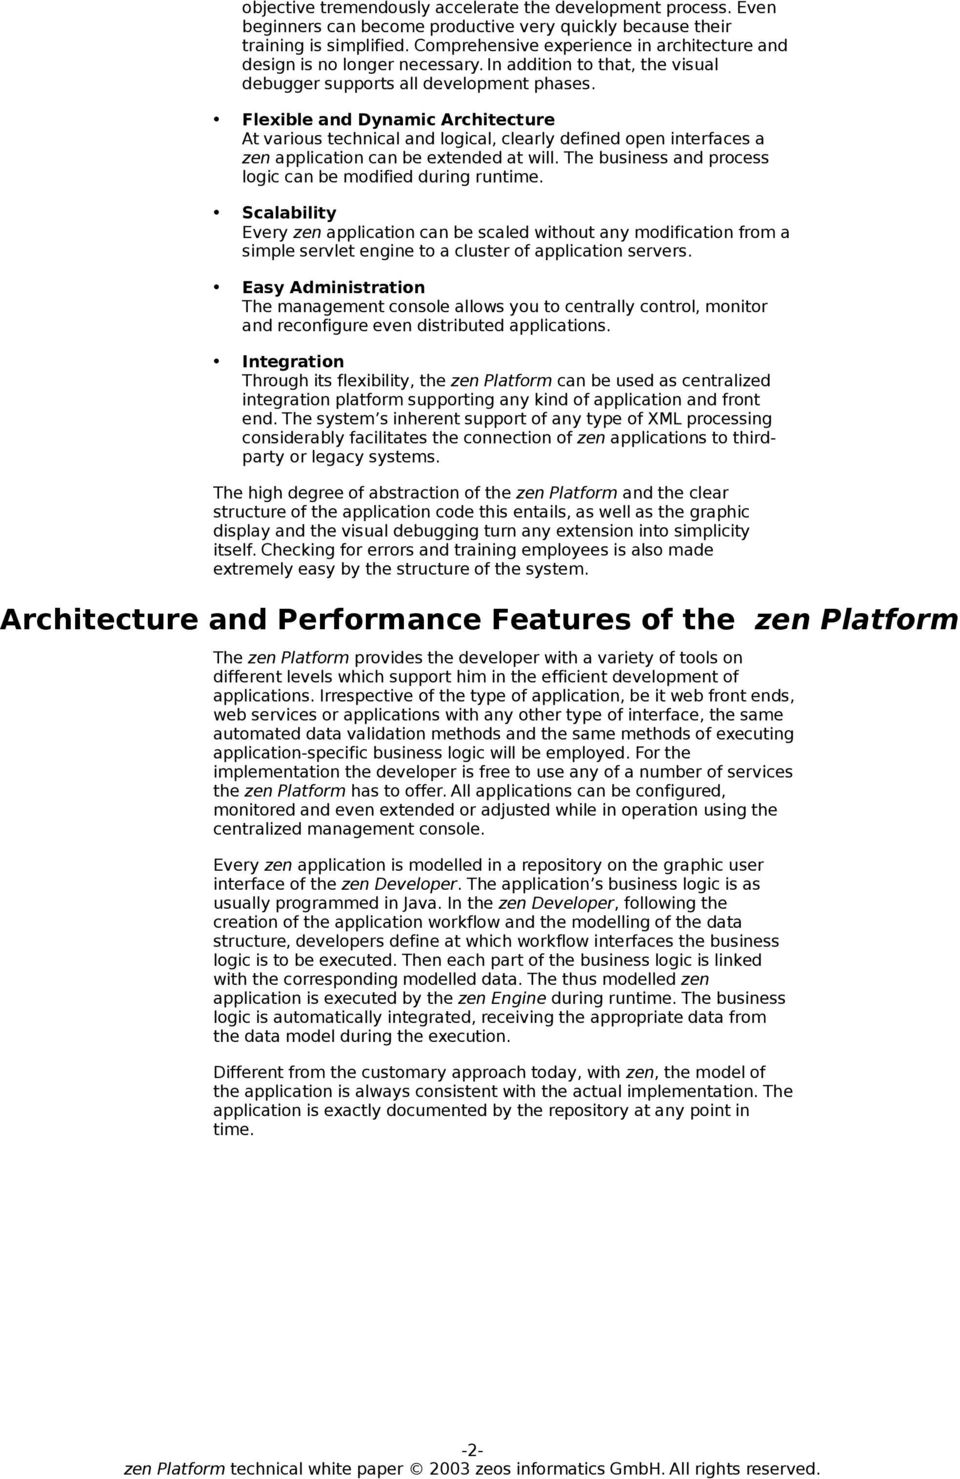 Flexible and Dynamic Architecture At various technical and logical, clearly defined open interfaces a zen application can be extended at will.